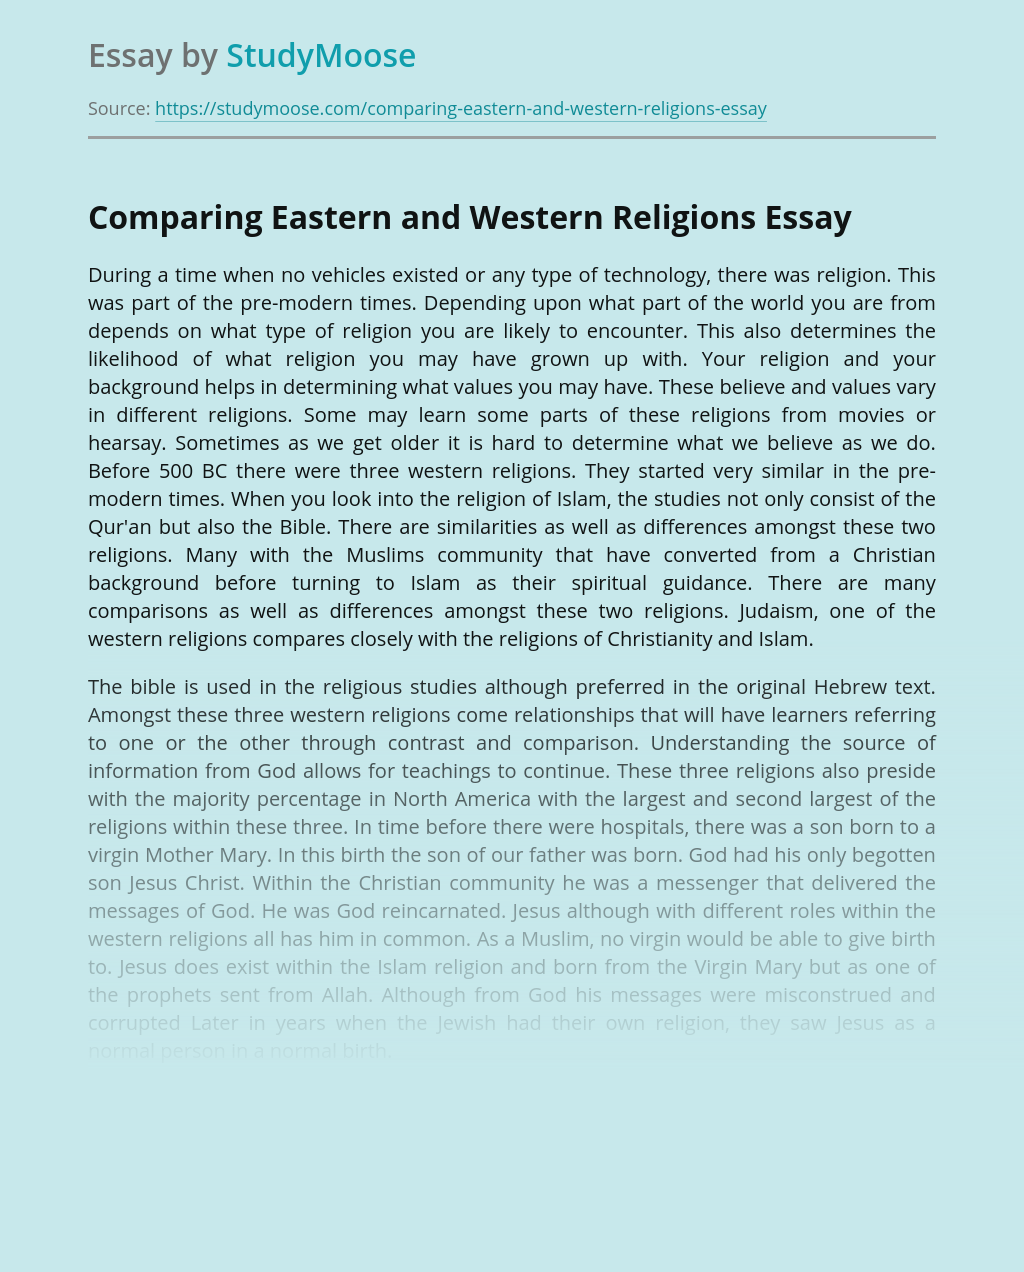 Comparing Eastern and Western Religions